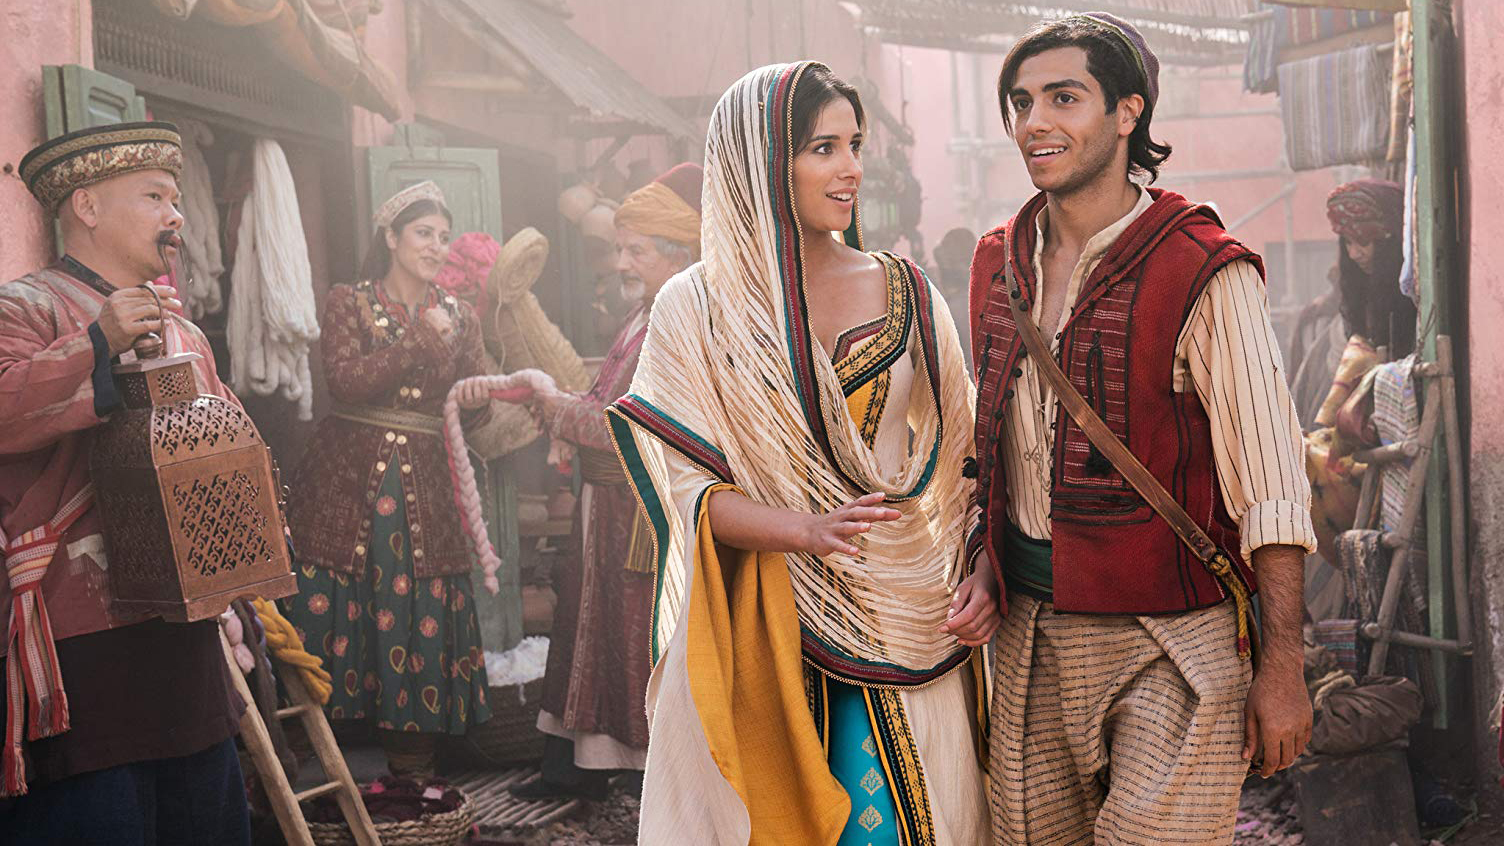 Aladdin (Mena Massoud) and Princess Jasmine (Naomi Scott) in the marketplace of Agrabah in Aladdin (2019)